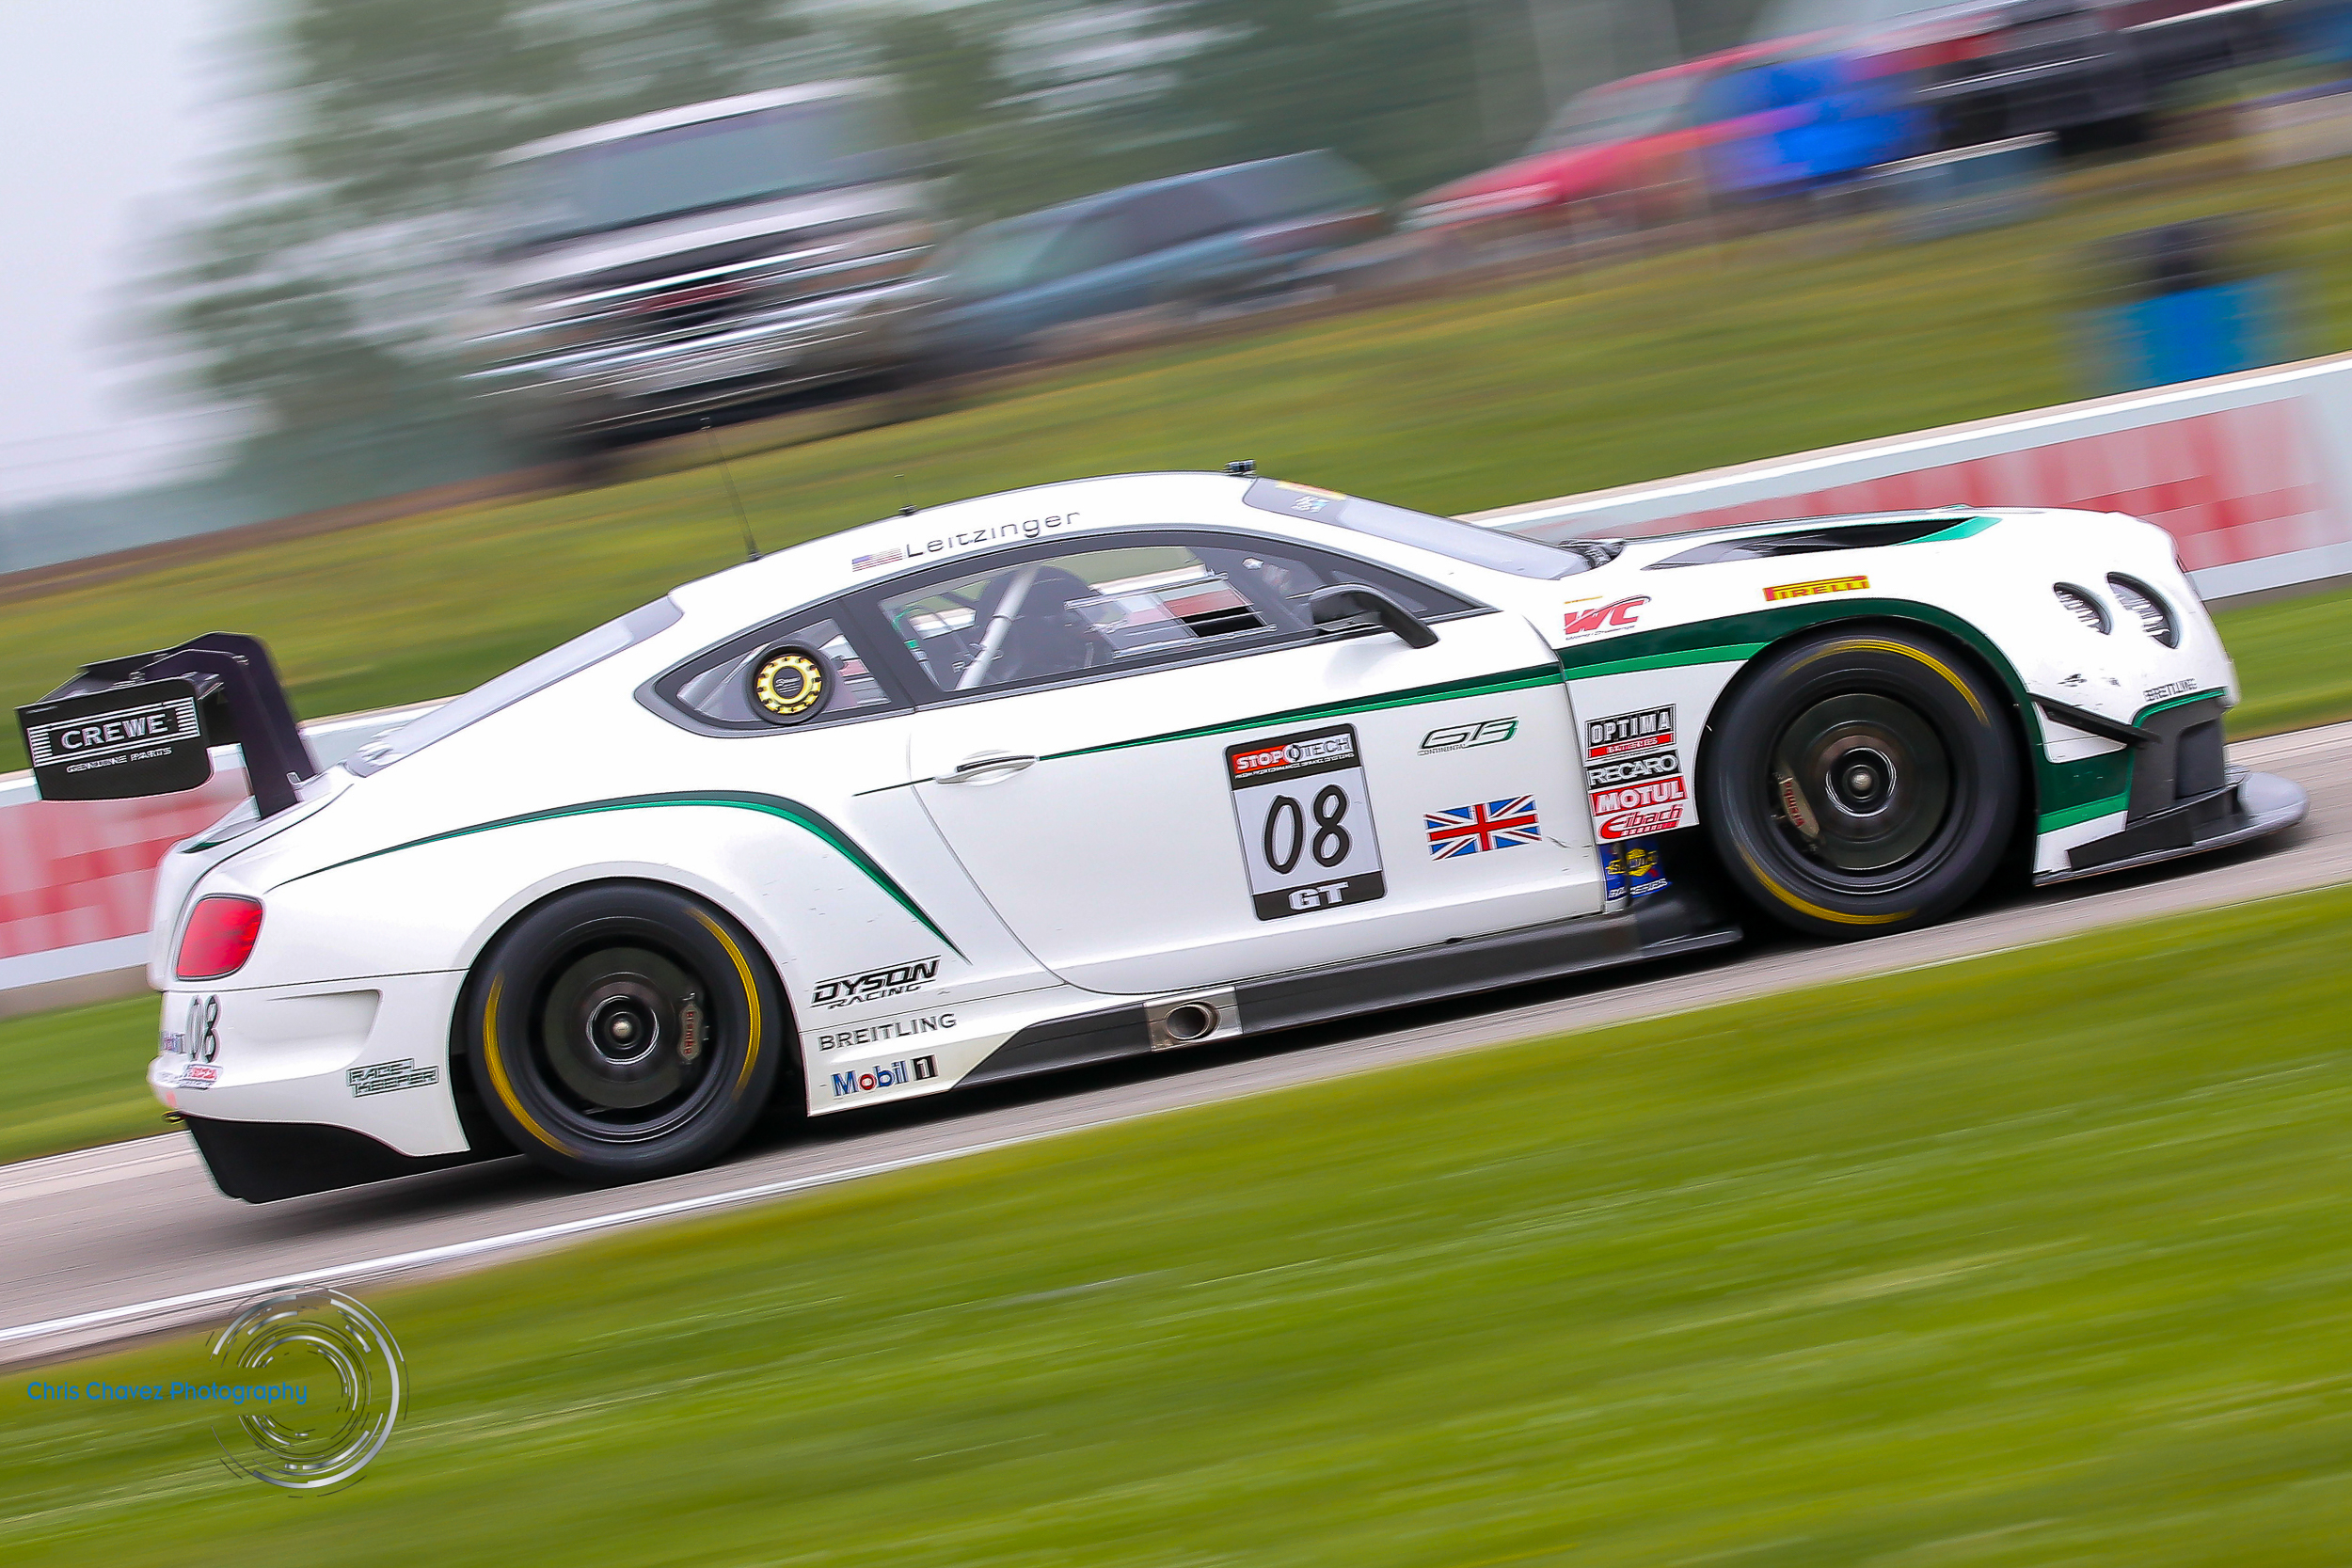 #08 Butch Leitzinger - Dyson Racing - Bentley Continental GT3  Want to see more, click on image to be redirected to gallery.